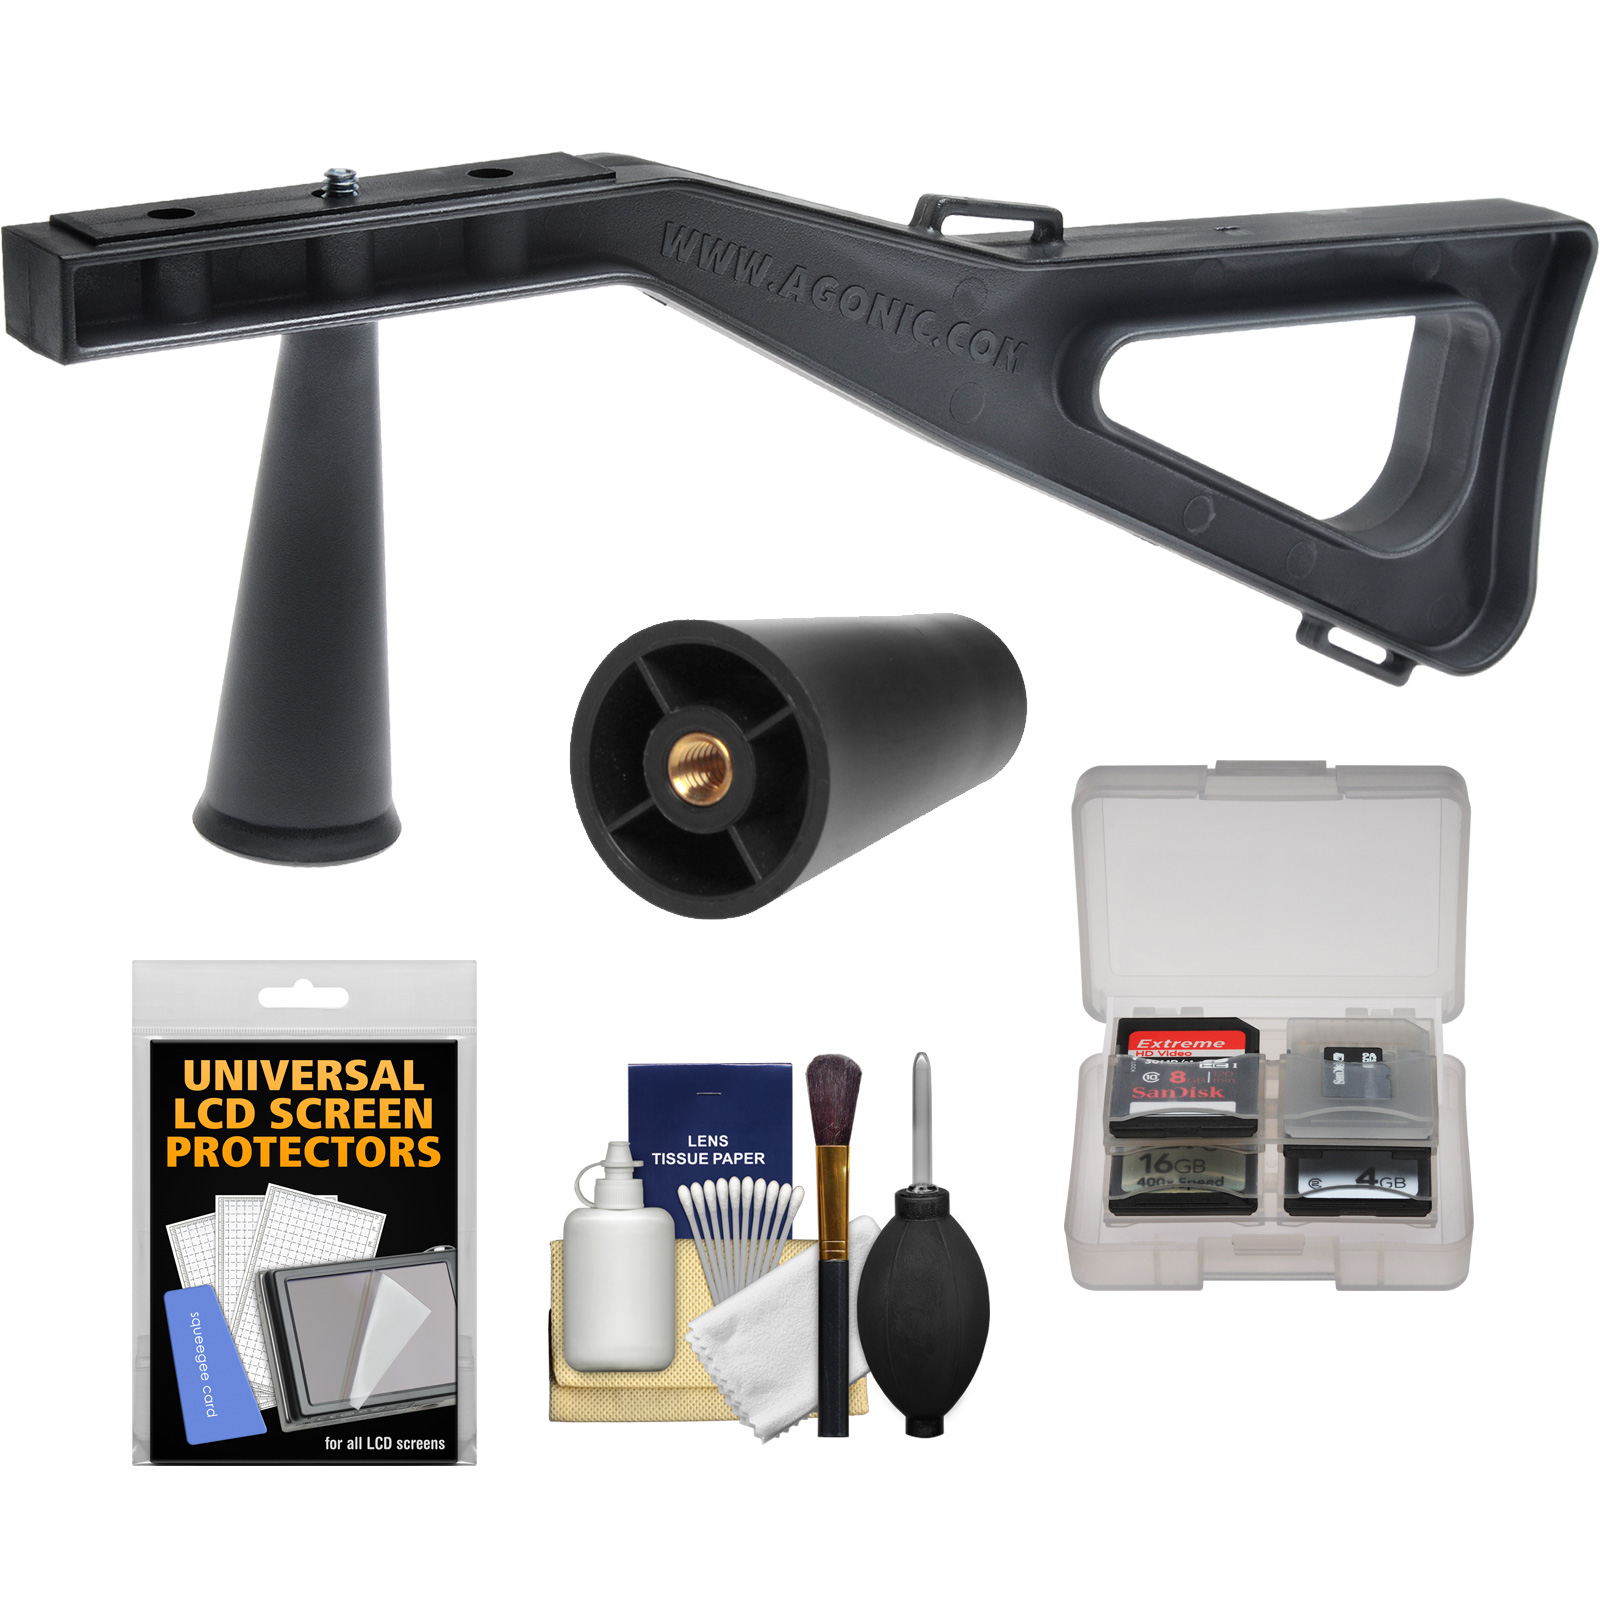 Stedi-Stock Shoulder Brace Stabilizer (Black) with Quick Release + Cleaning Accessory Kit for Digital SLR Cameras, Video Camcorders & Spotting Scopes